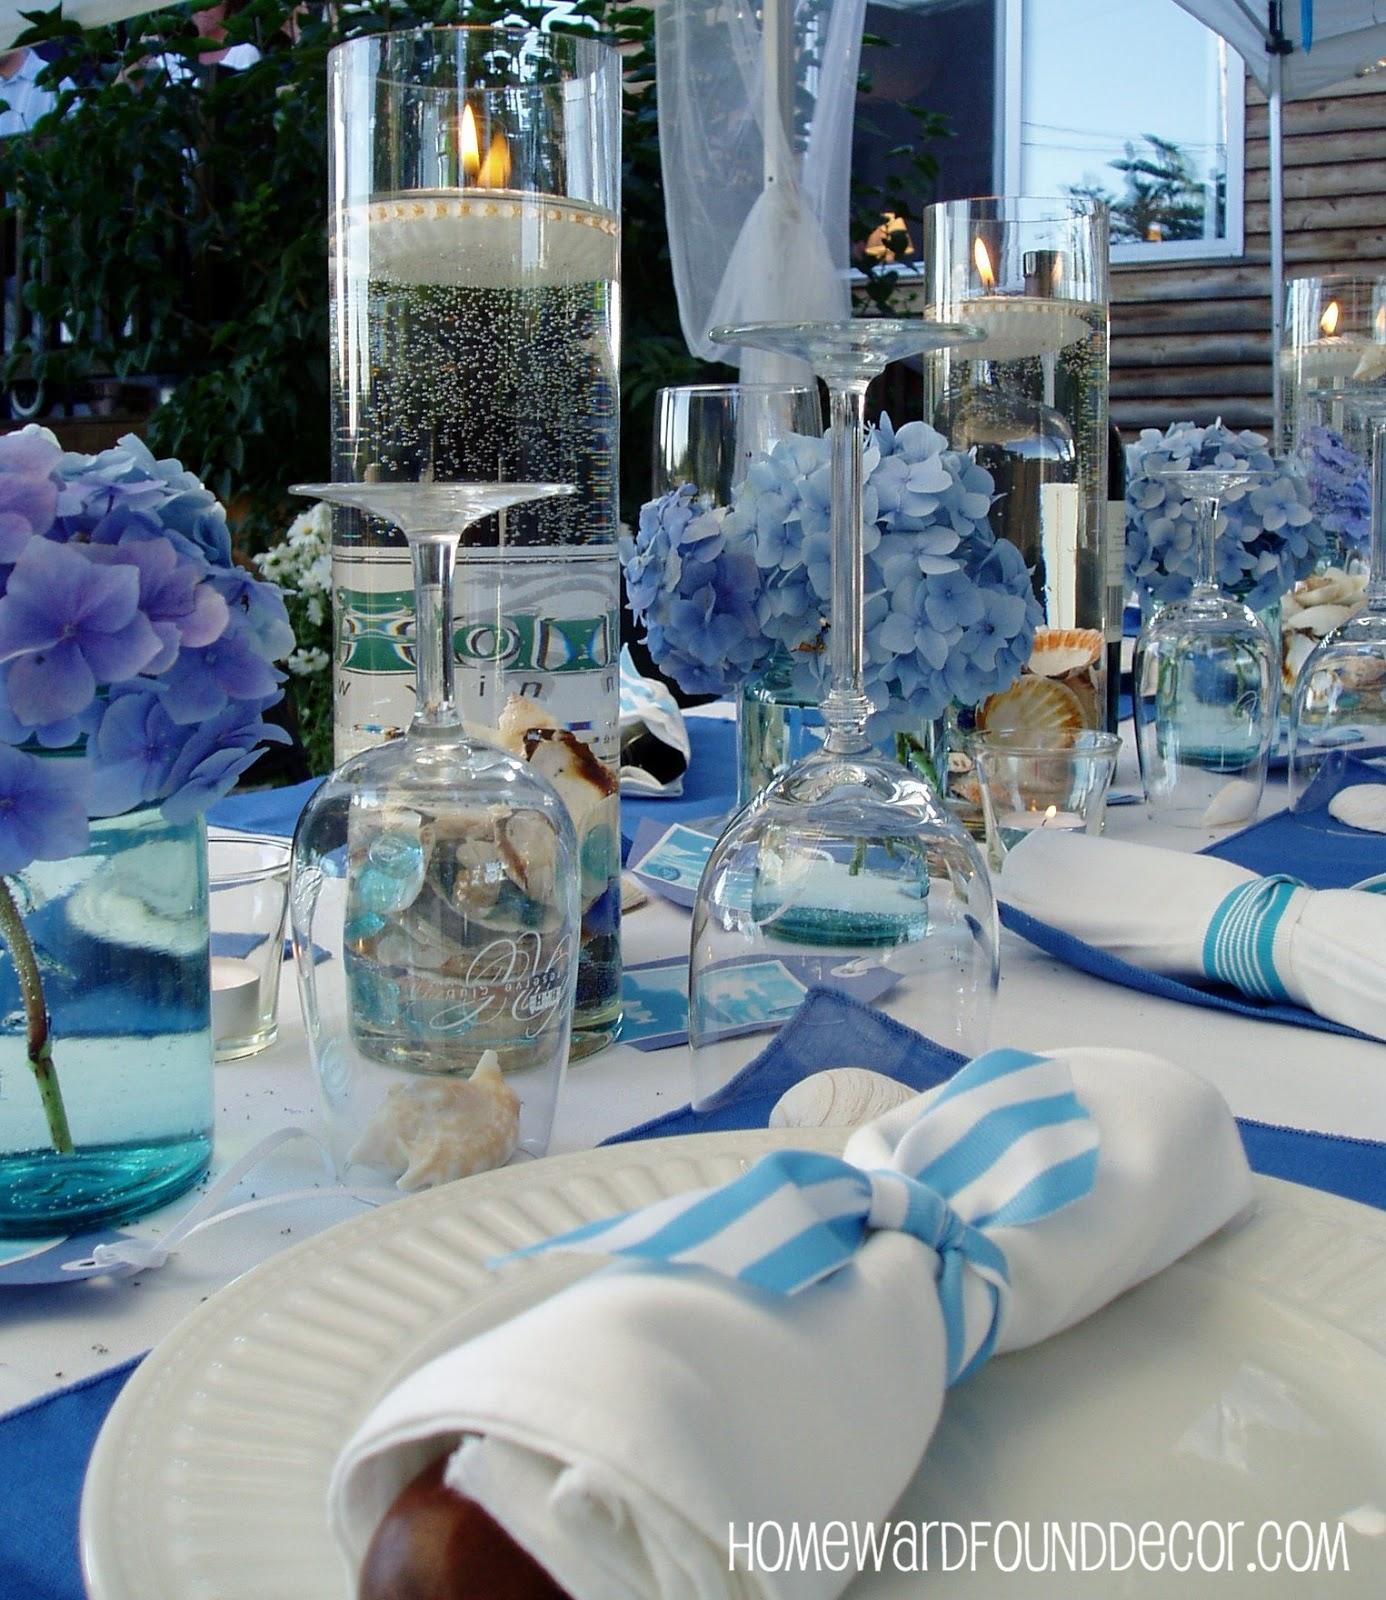 HOMEWARDfound Decor: Summertime Blues: DIY Party Decor